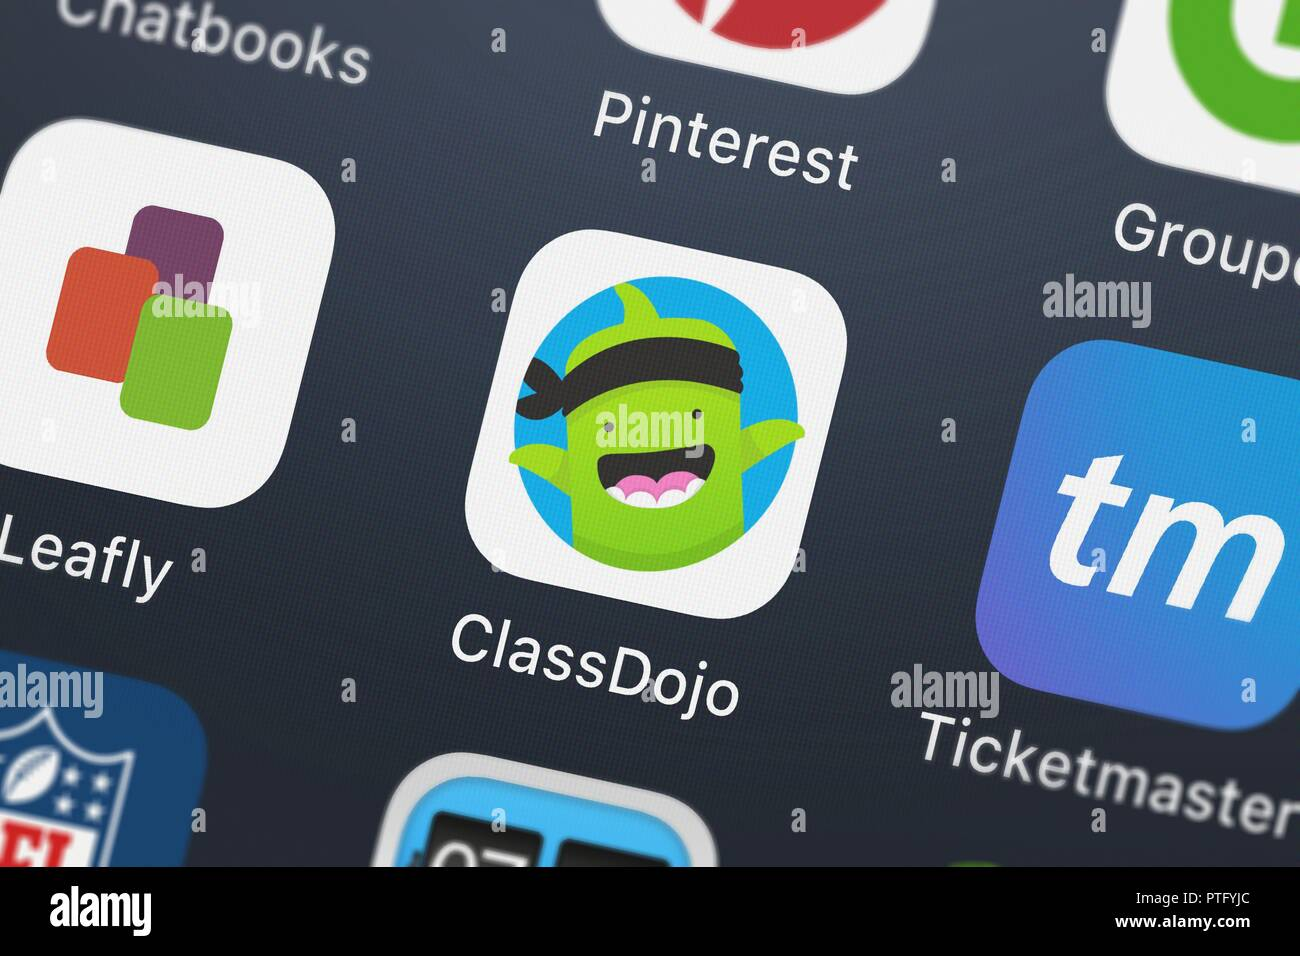 a2a1571e3c0 London, United Kingdom - October 09, 2018: Close-up of the ClassDojo icon  from Class Twist Inc. on an iPhone.